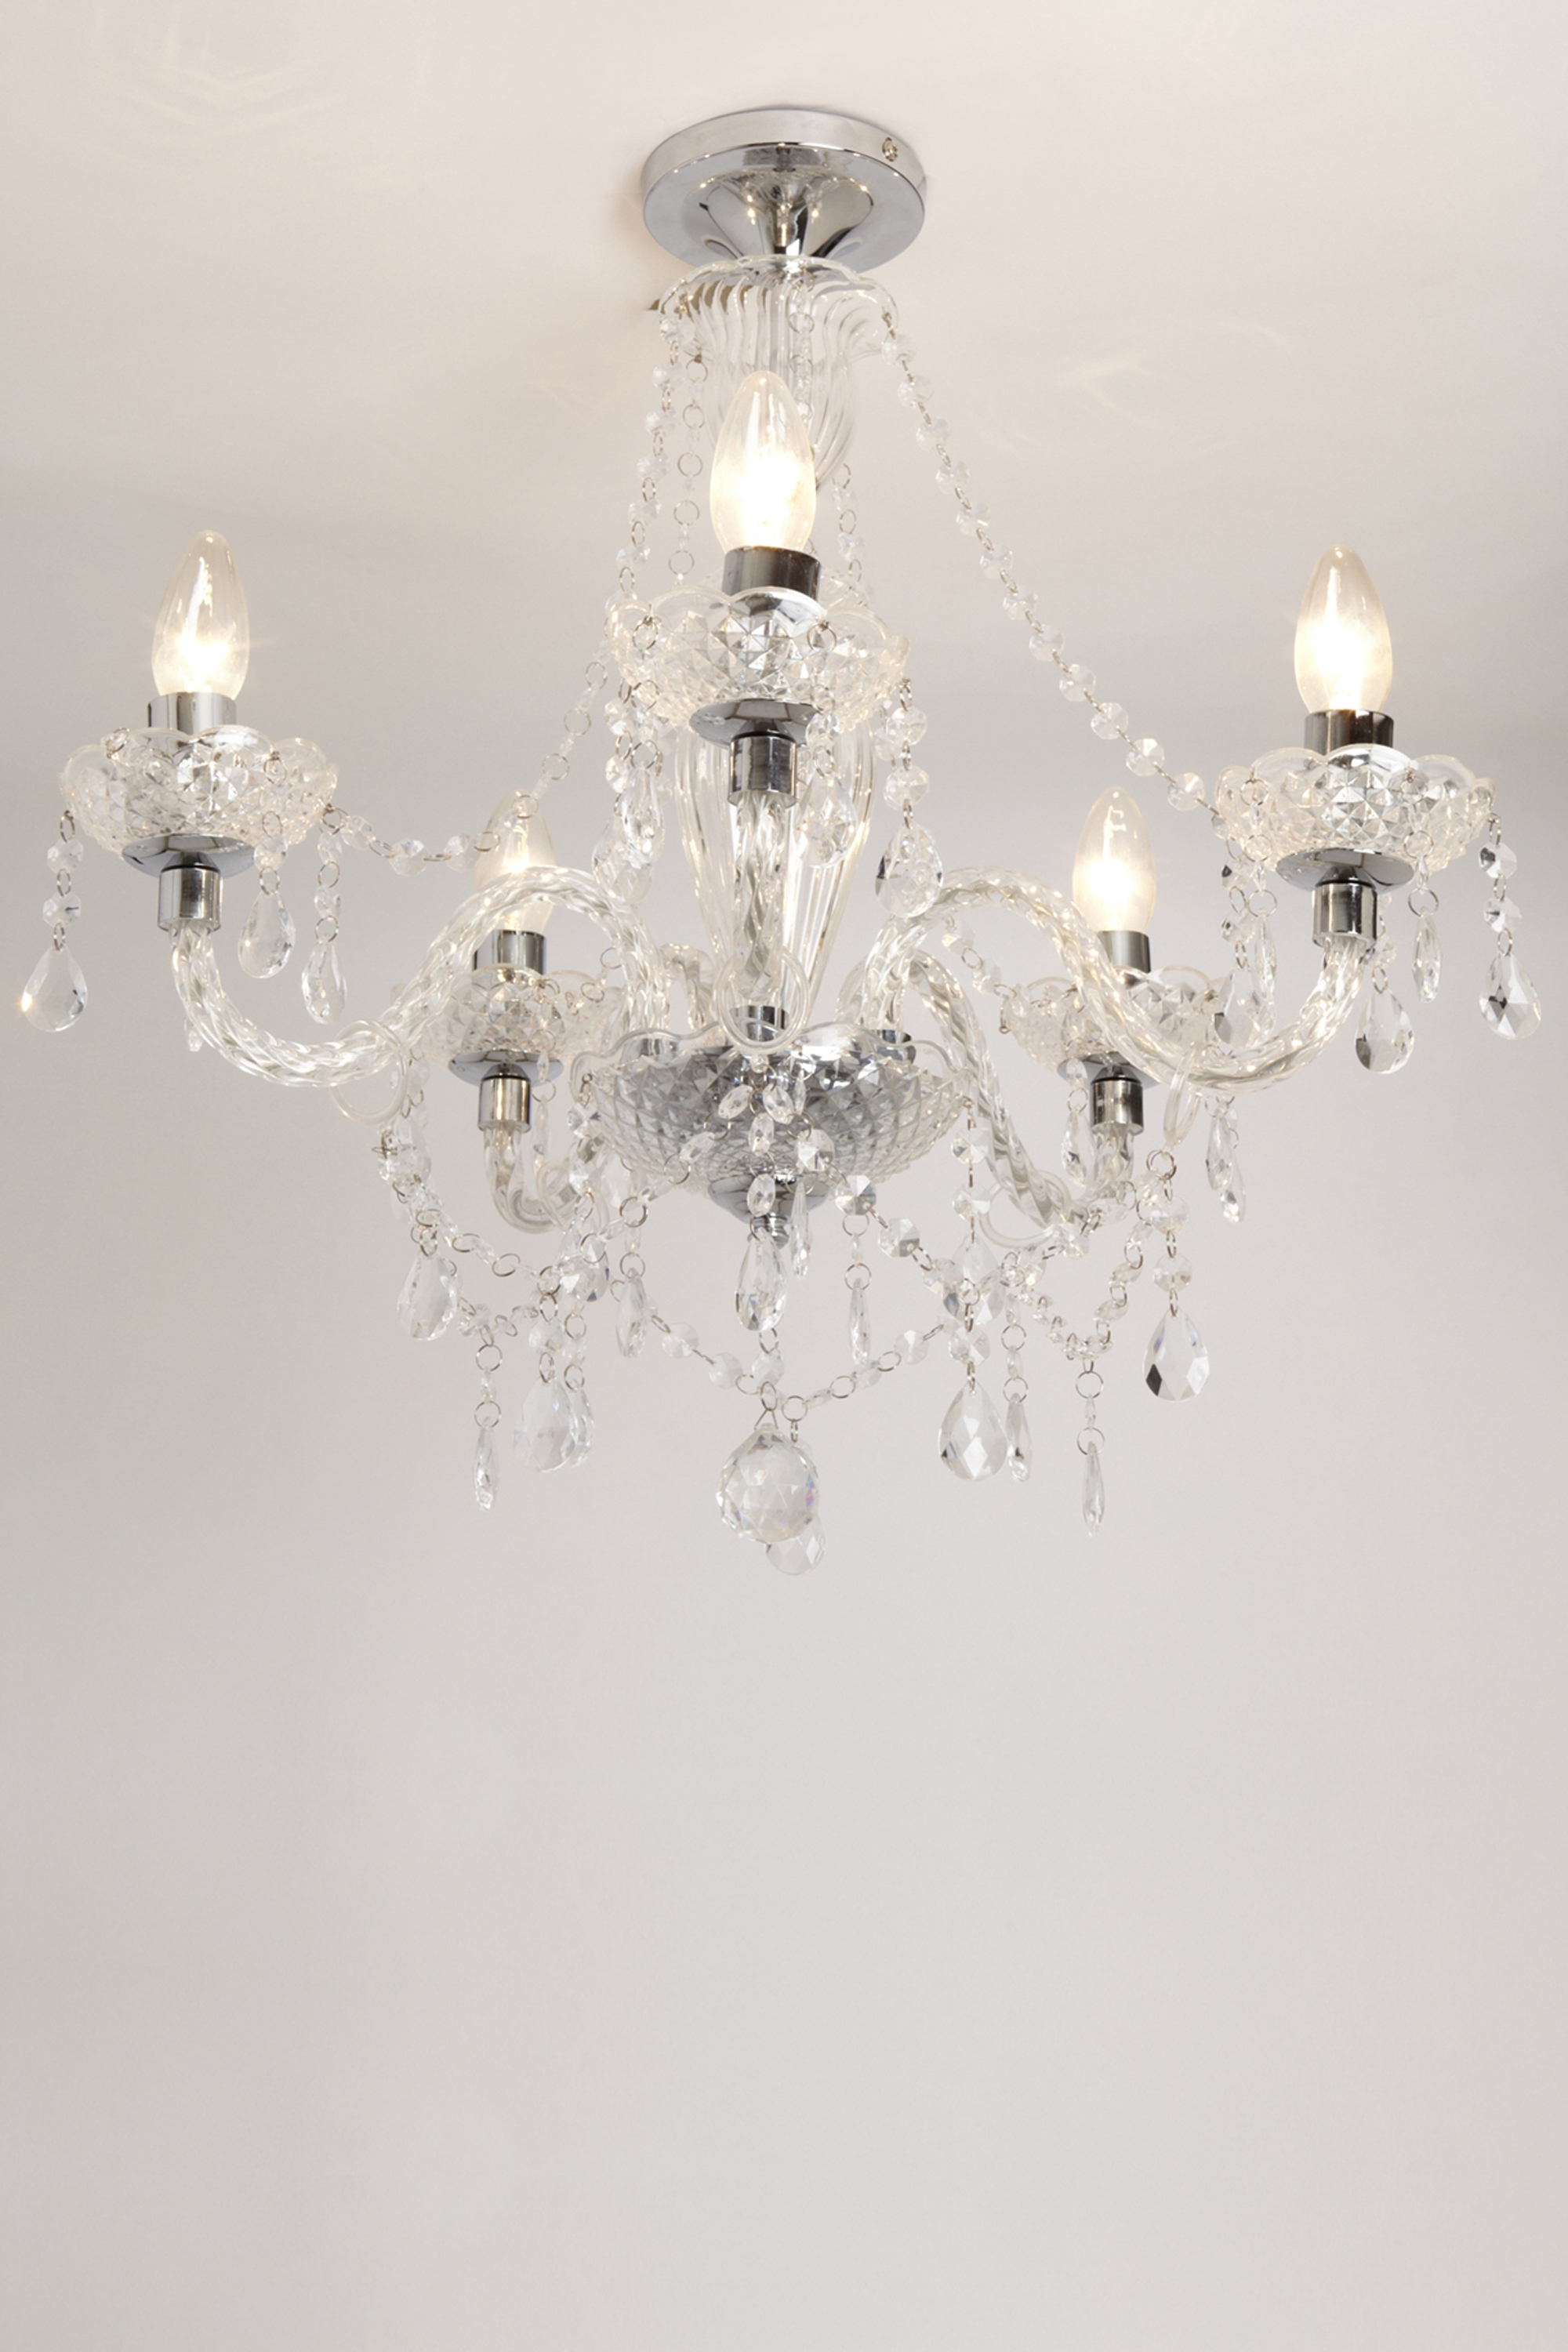 Flush Fitting Chandeliers With Regard To 2018 Sapparia 5 Light Flush Chandelier Bhs, £60 (was £120), Living (View 2 of 20)